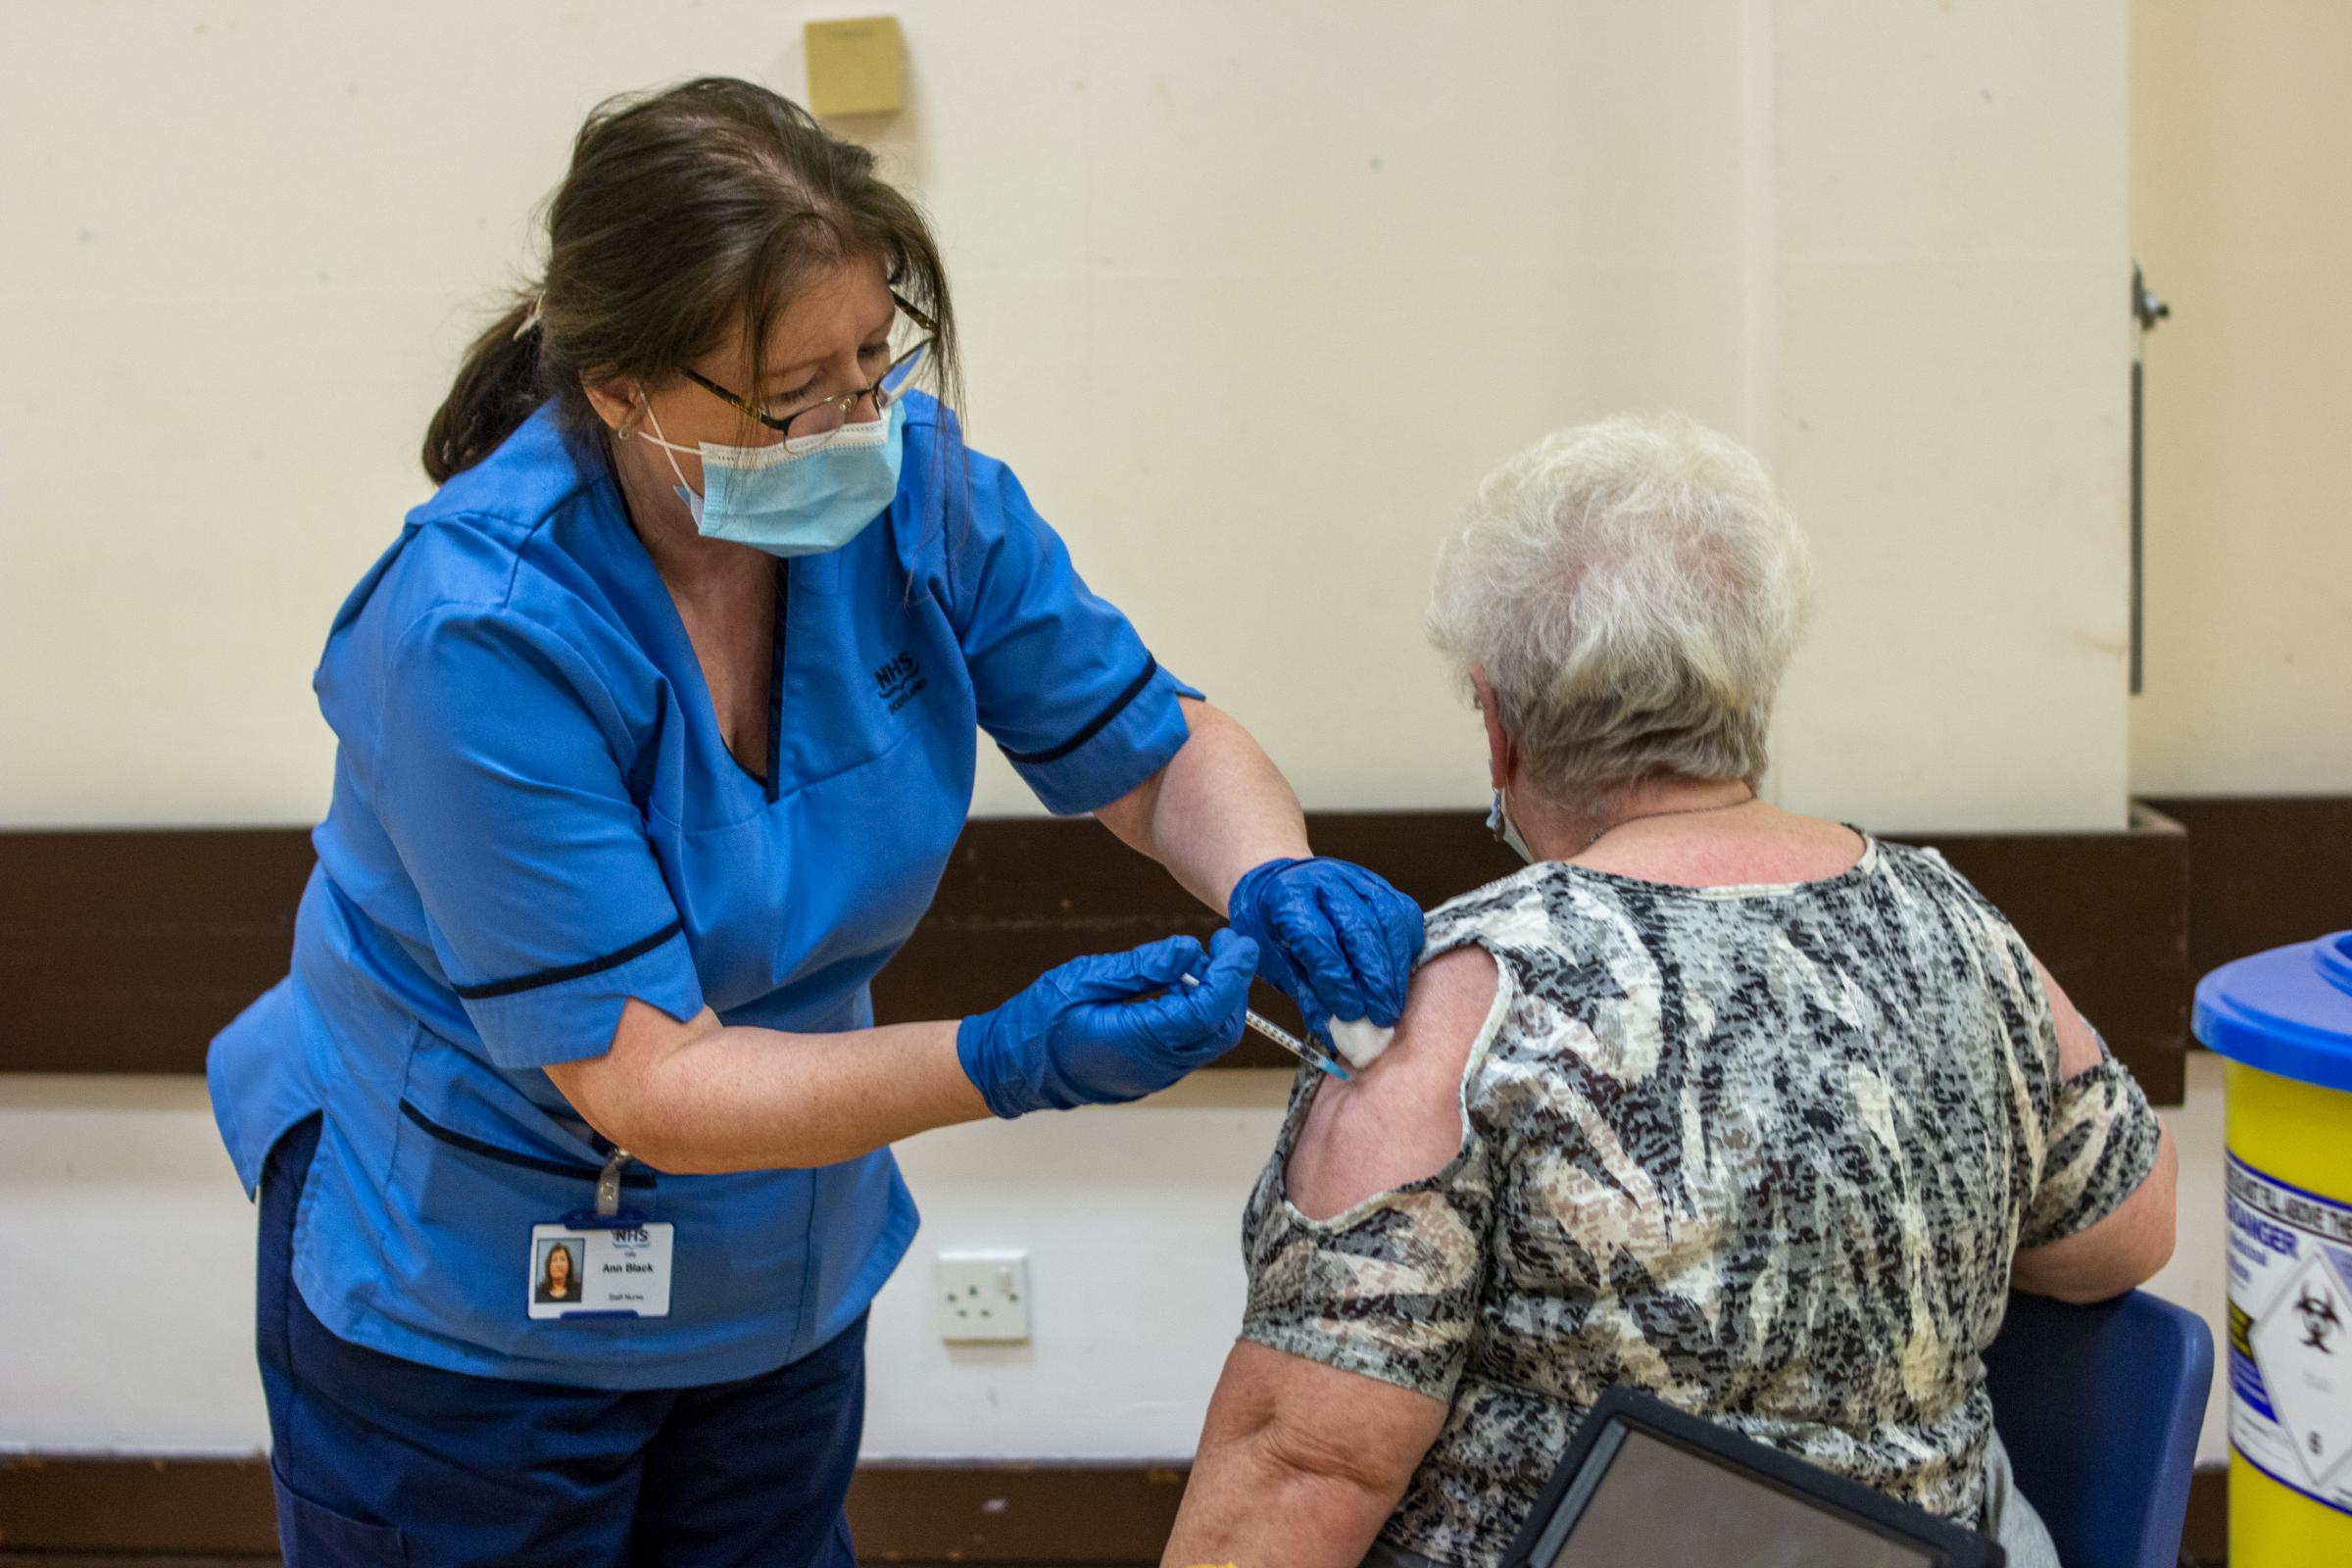 Covid: Fife drop-in vaccination clinics available next week - find your nearest